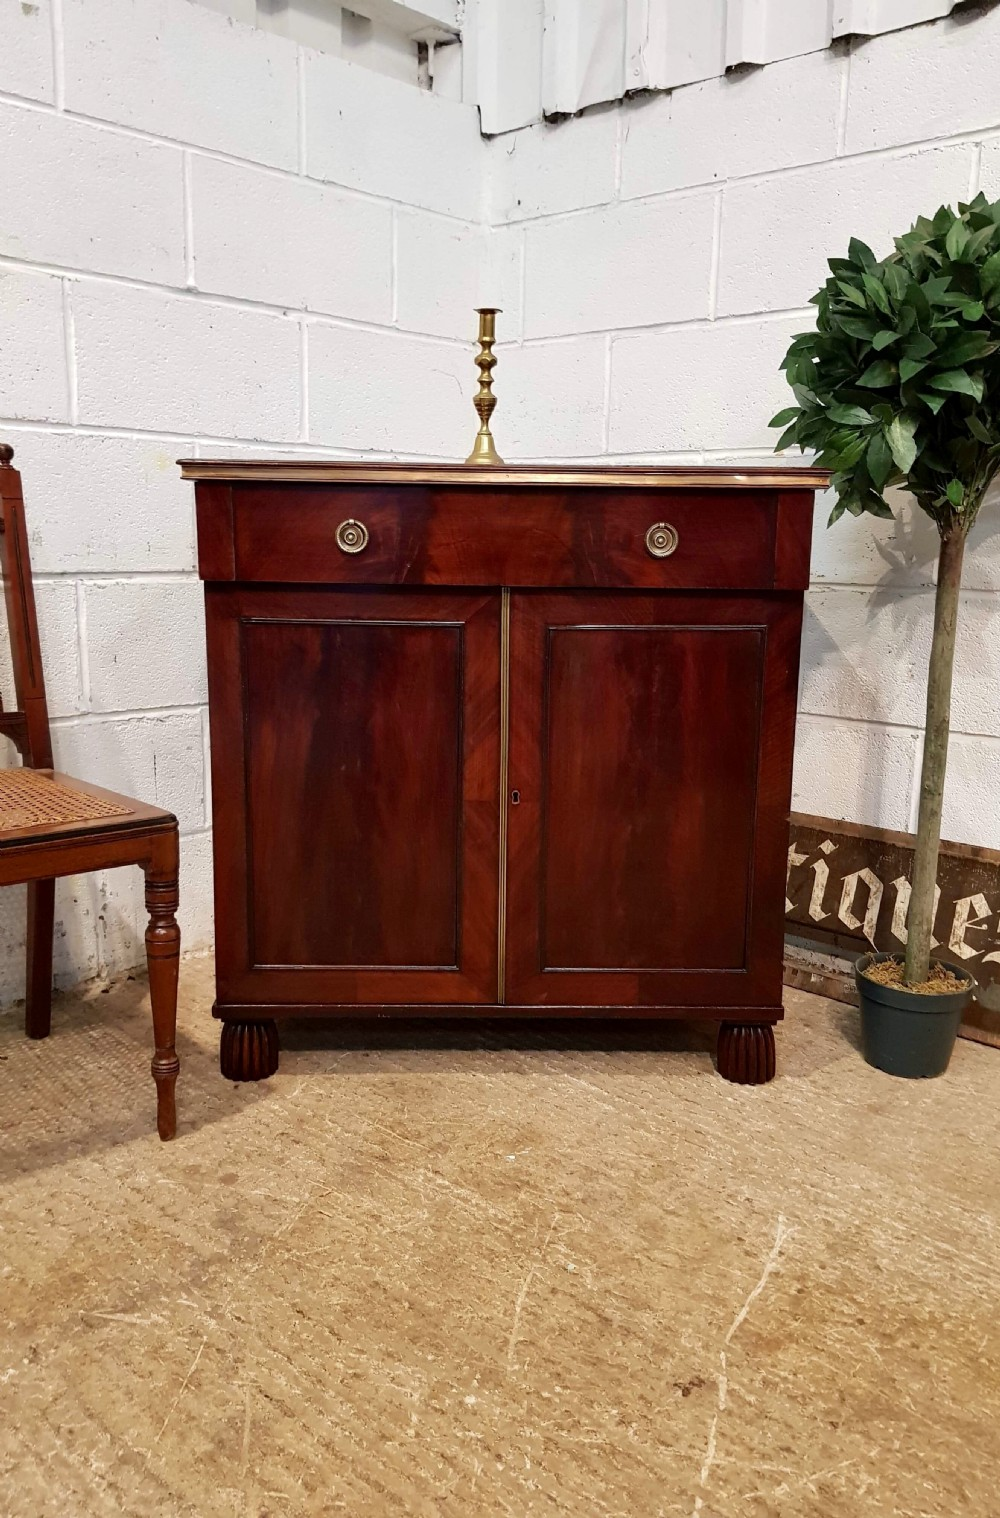 antique small regency cuban mahogany side cabinet with brass gilt fittings c1820